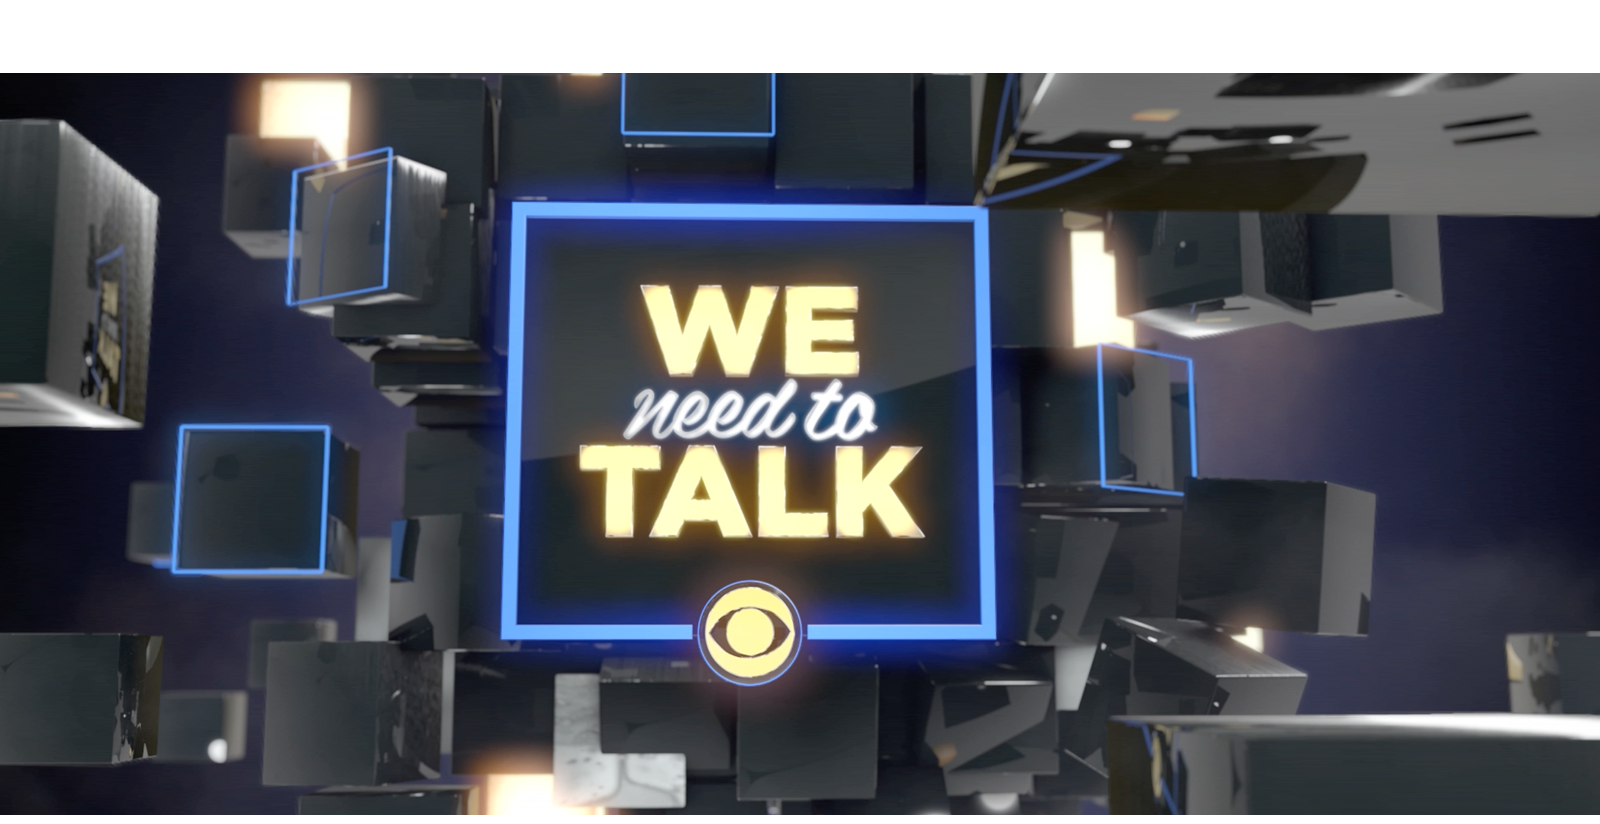 Diego Guevara - CBS We Need To Talk - Identity